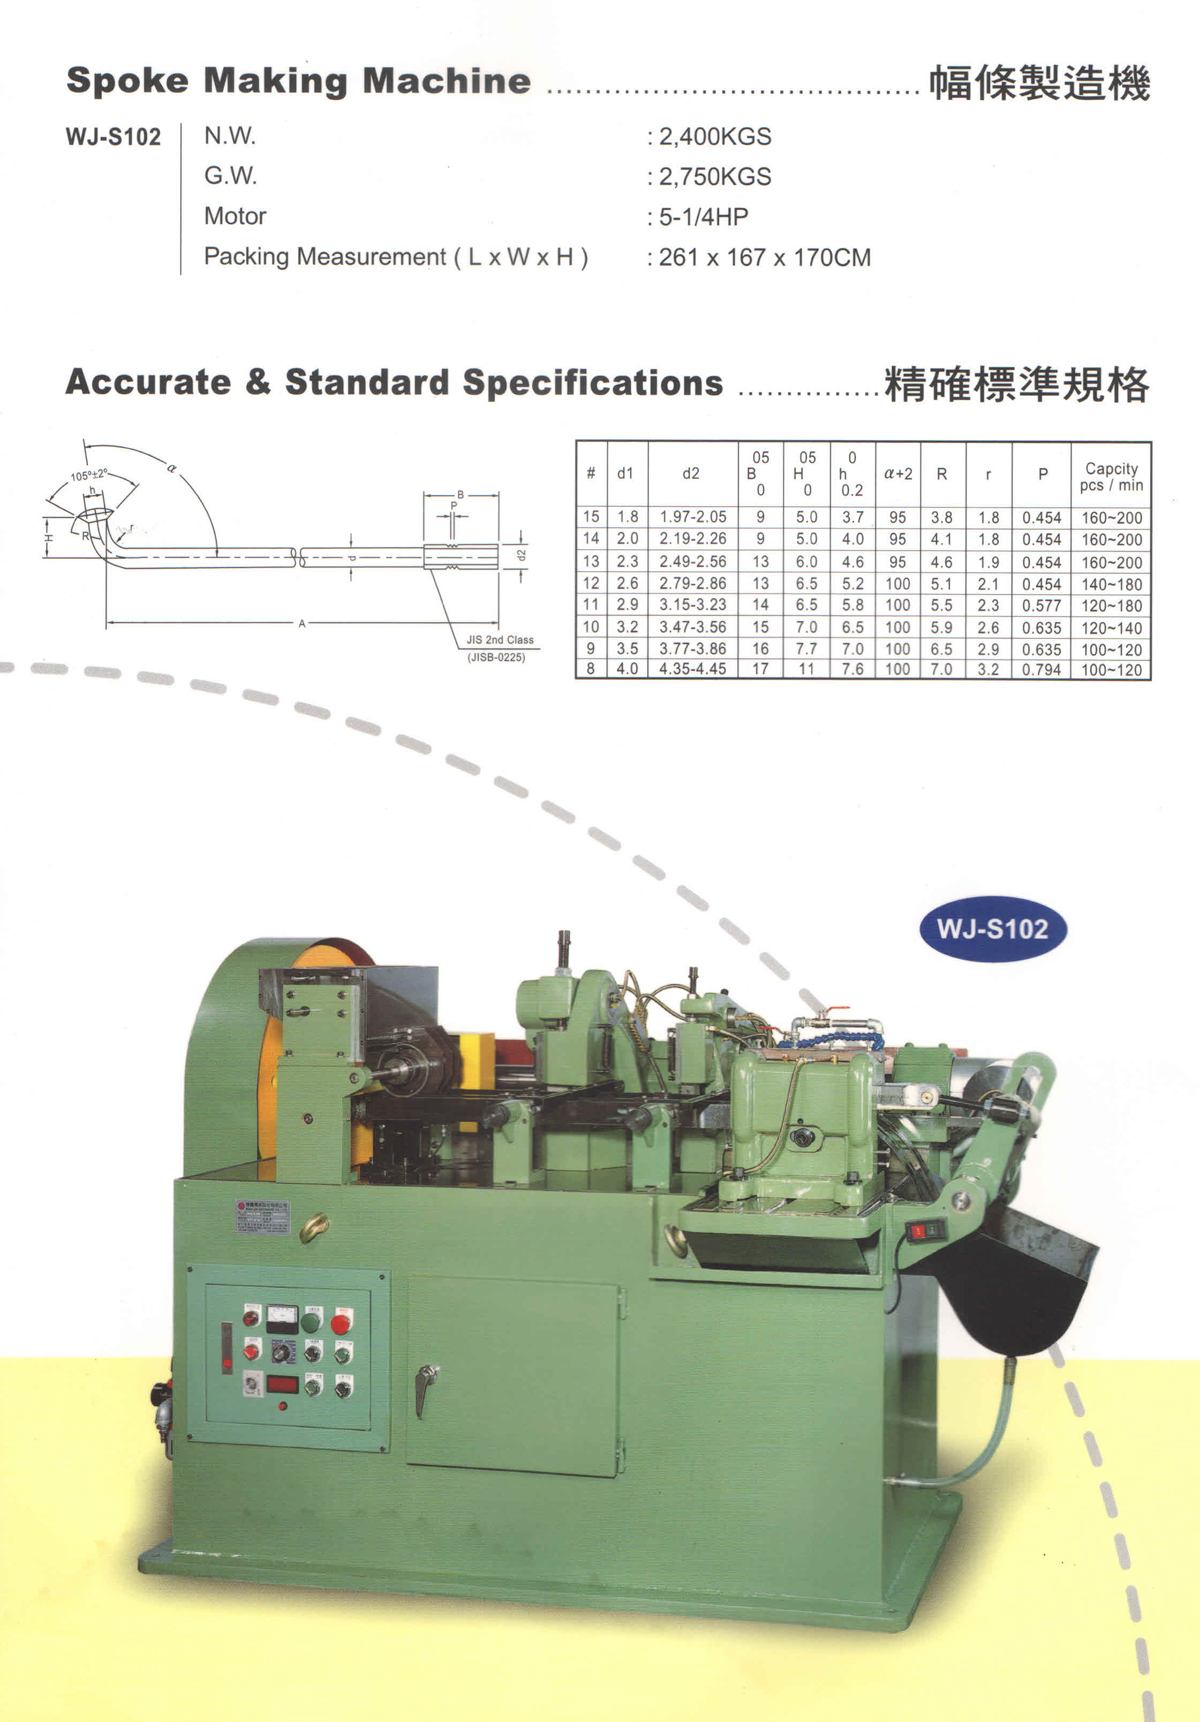 proimages/products/Machine/SPOKE MACHINE/WJ-S102.jpg